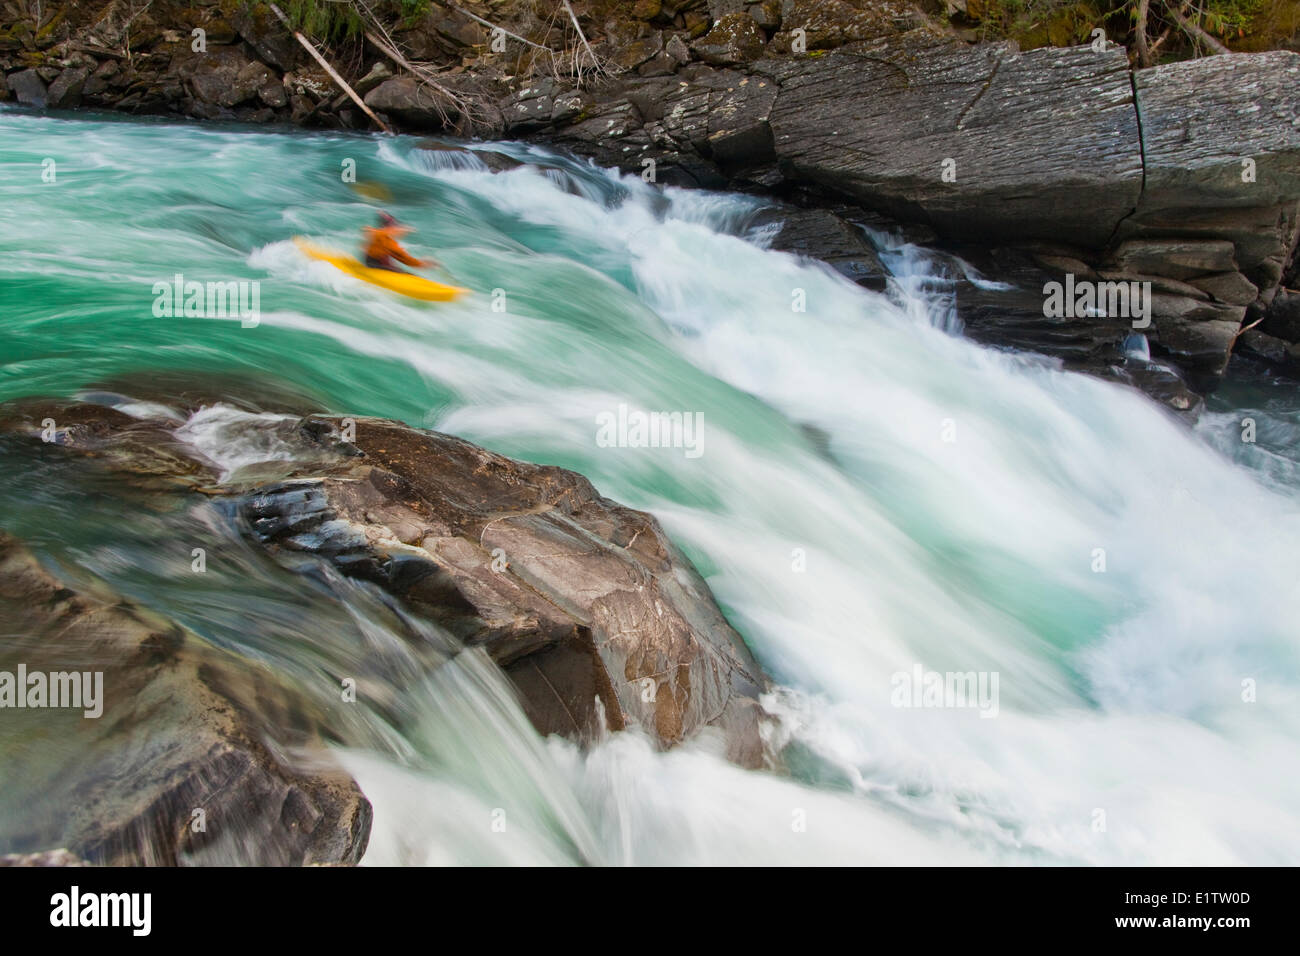 A male kayaker drops into a big rapid on the Fraser River, Mt Robson Provincial Park, BC - Stock Image